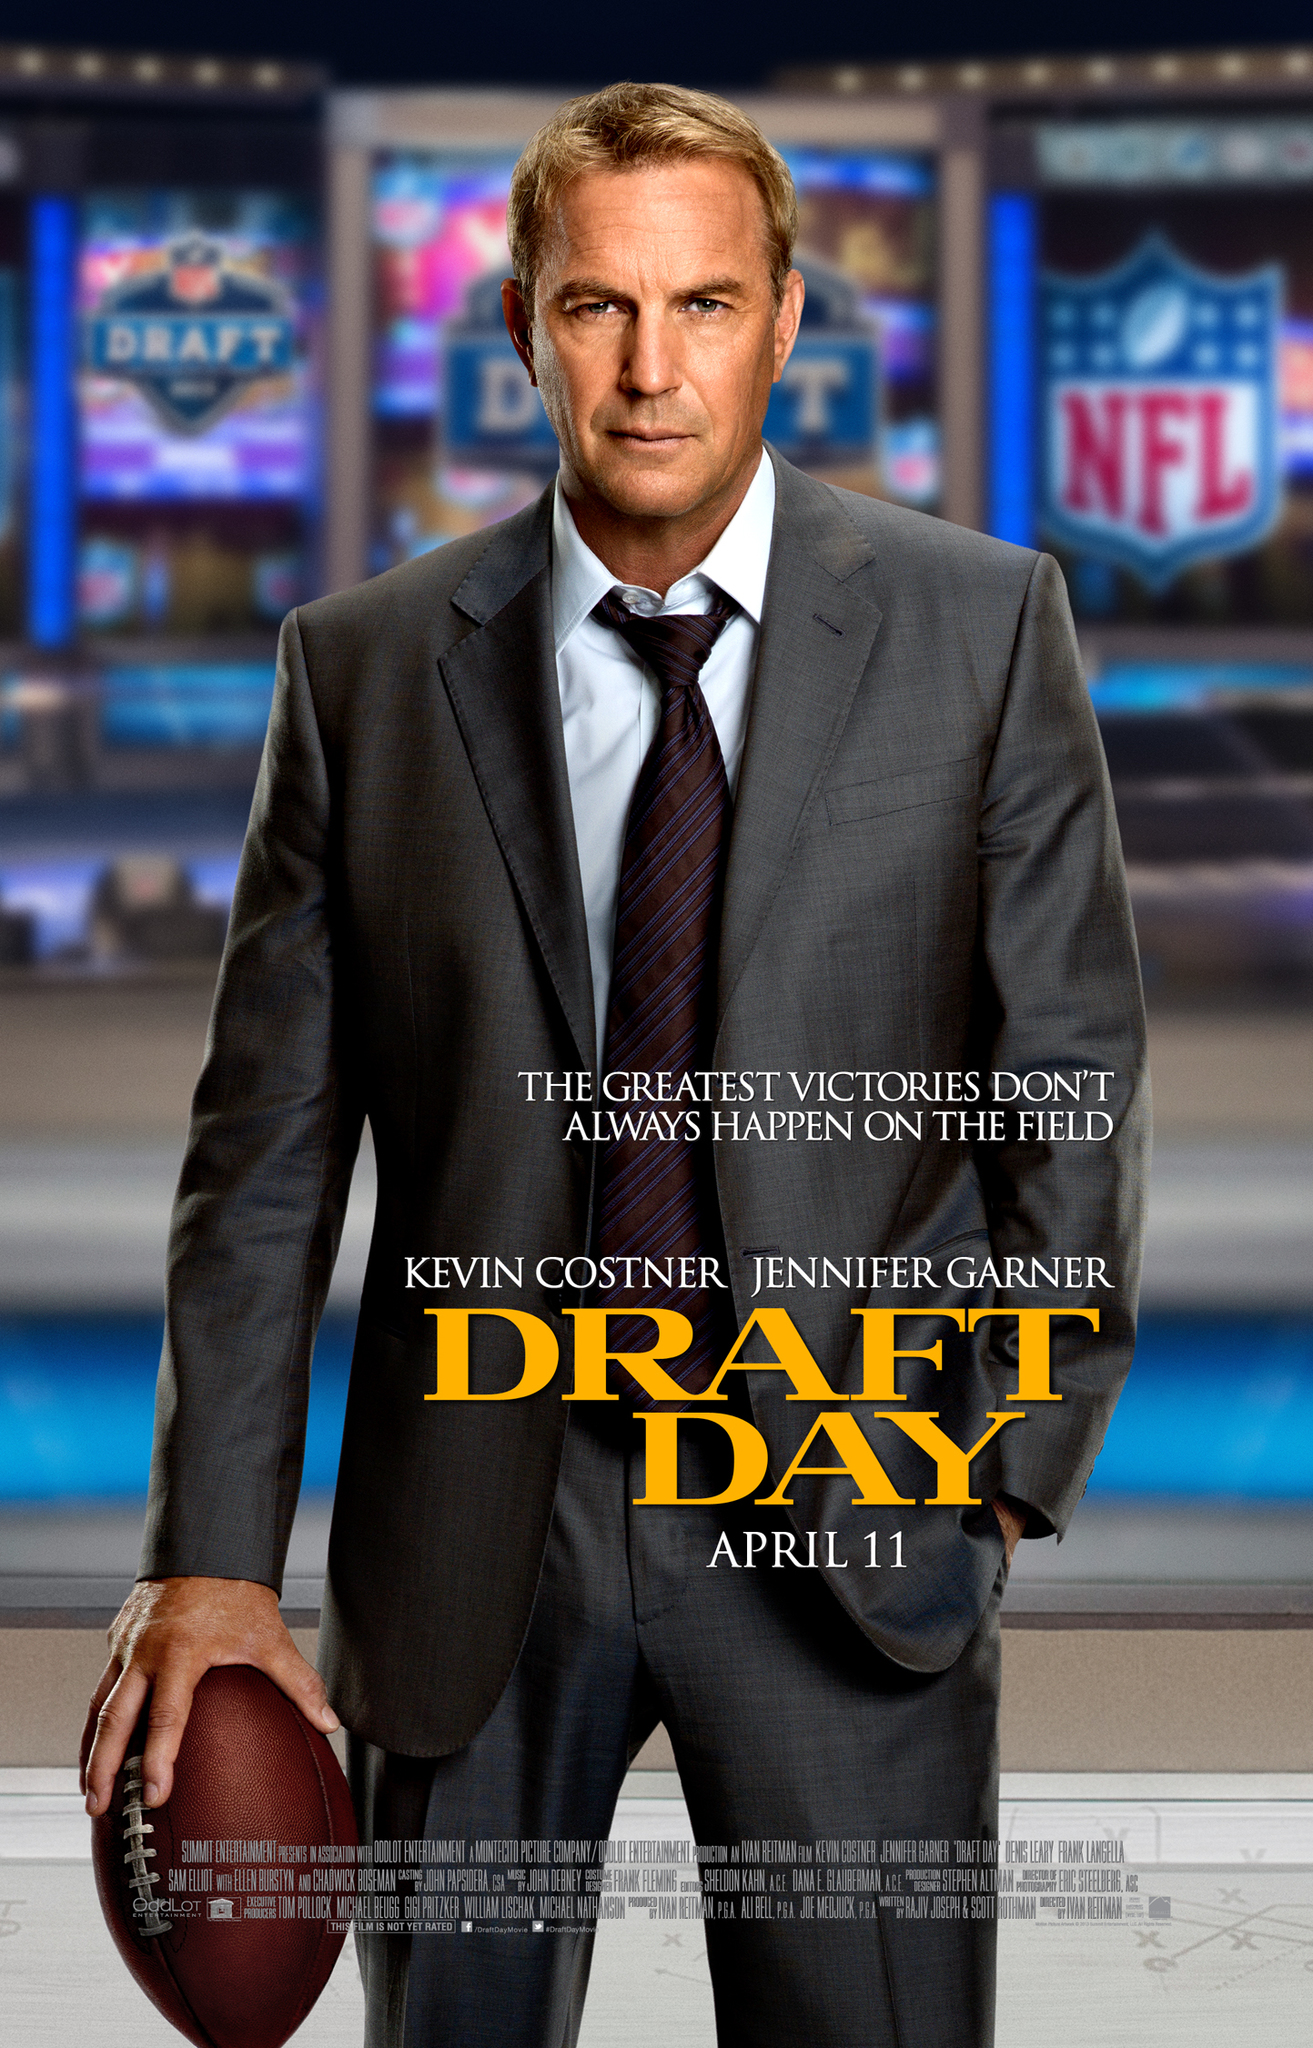 Image result for draft day movie poster